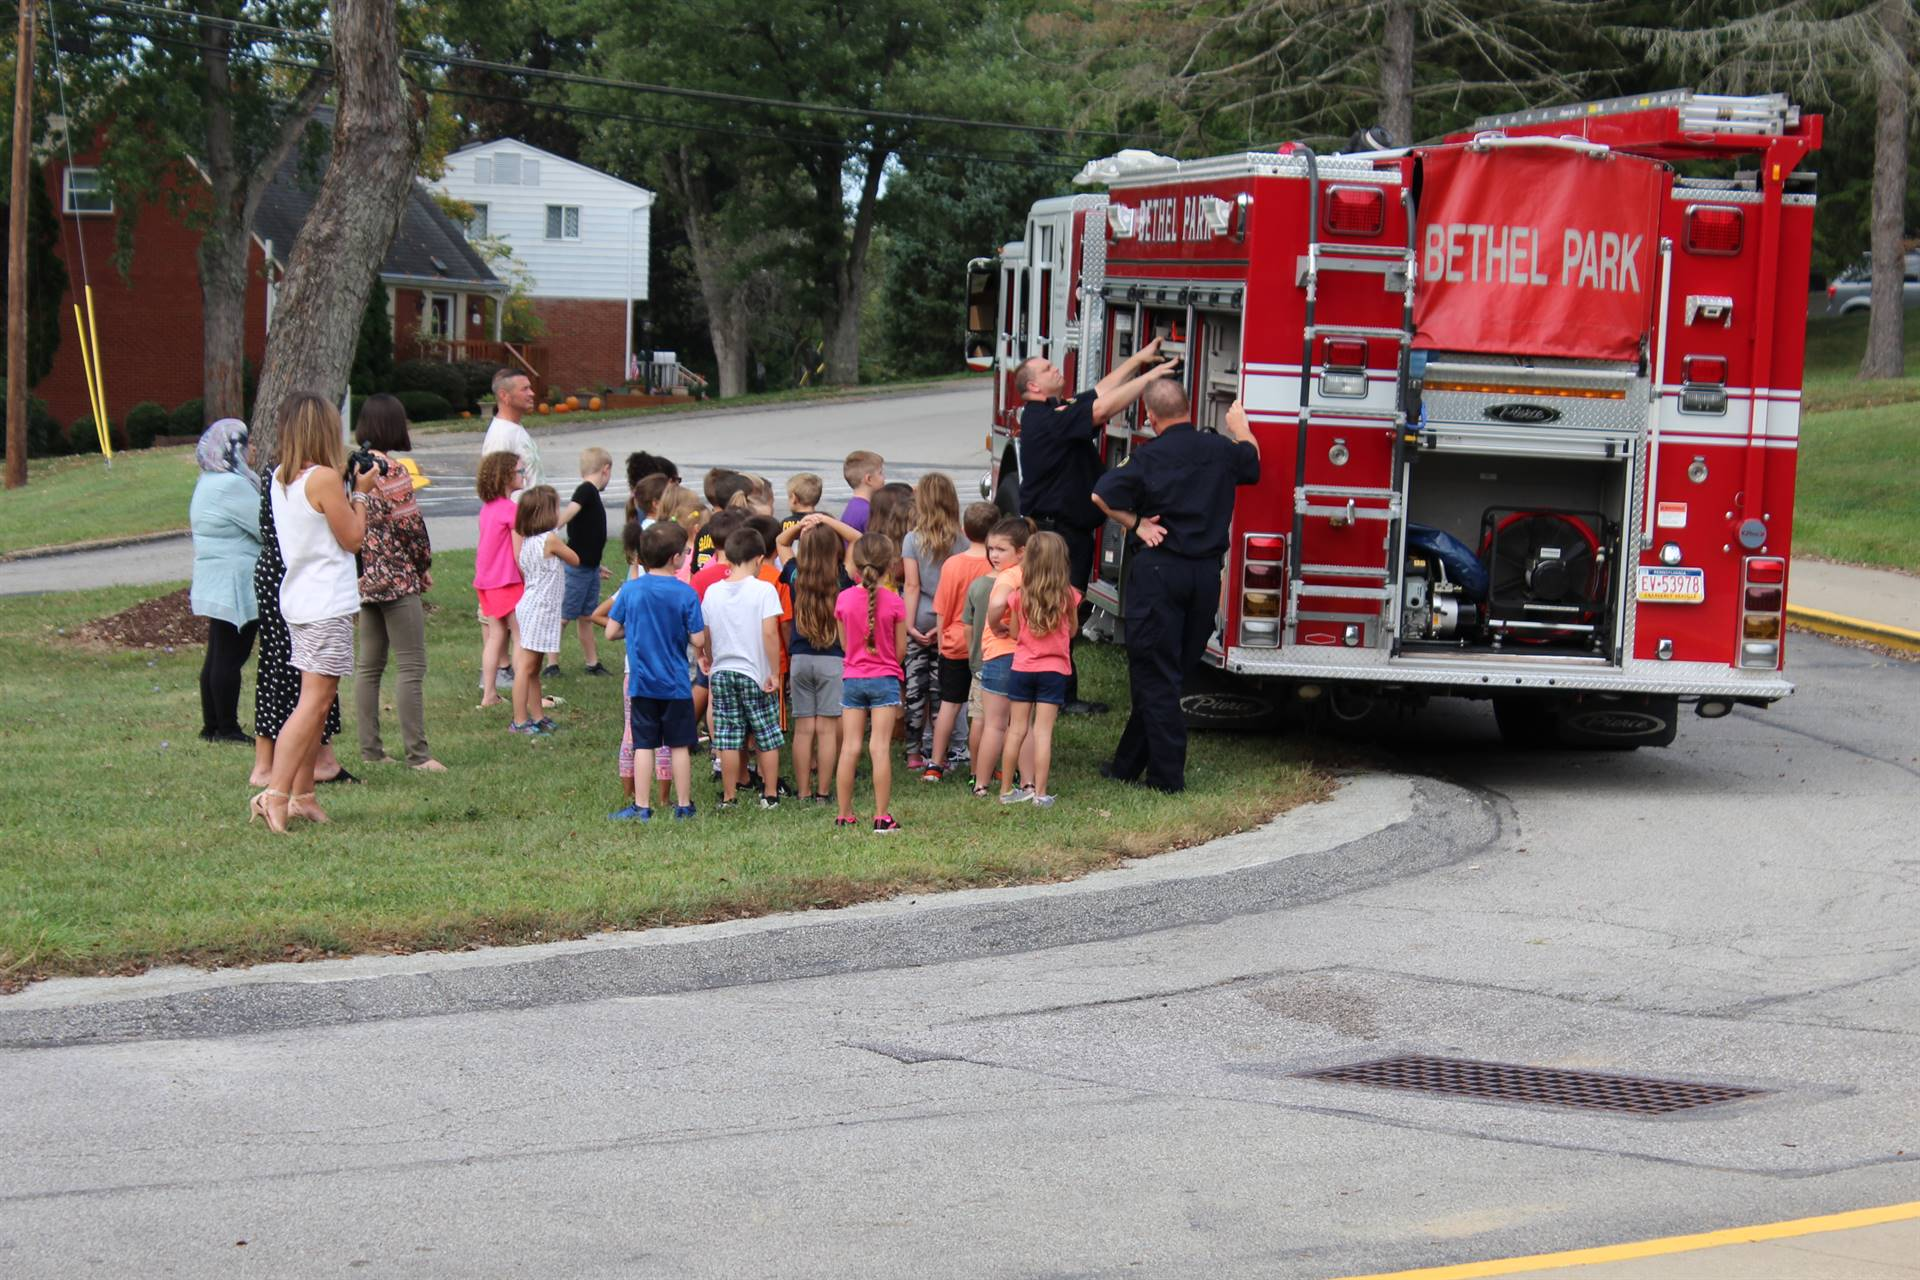 Students gathered around the fire truck